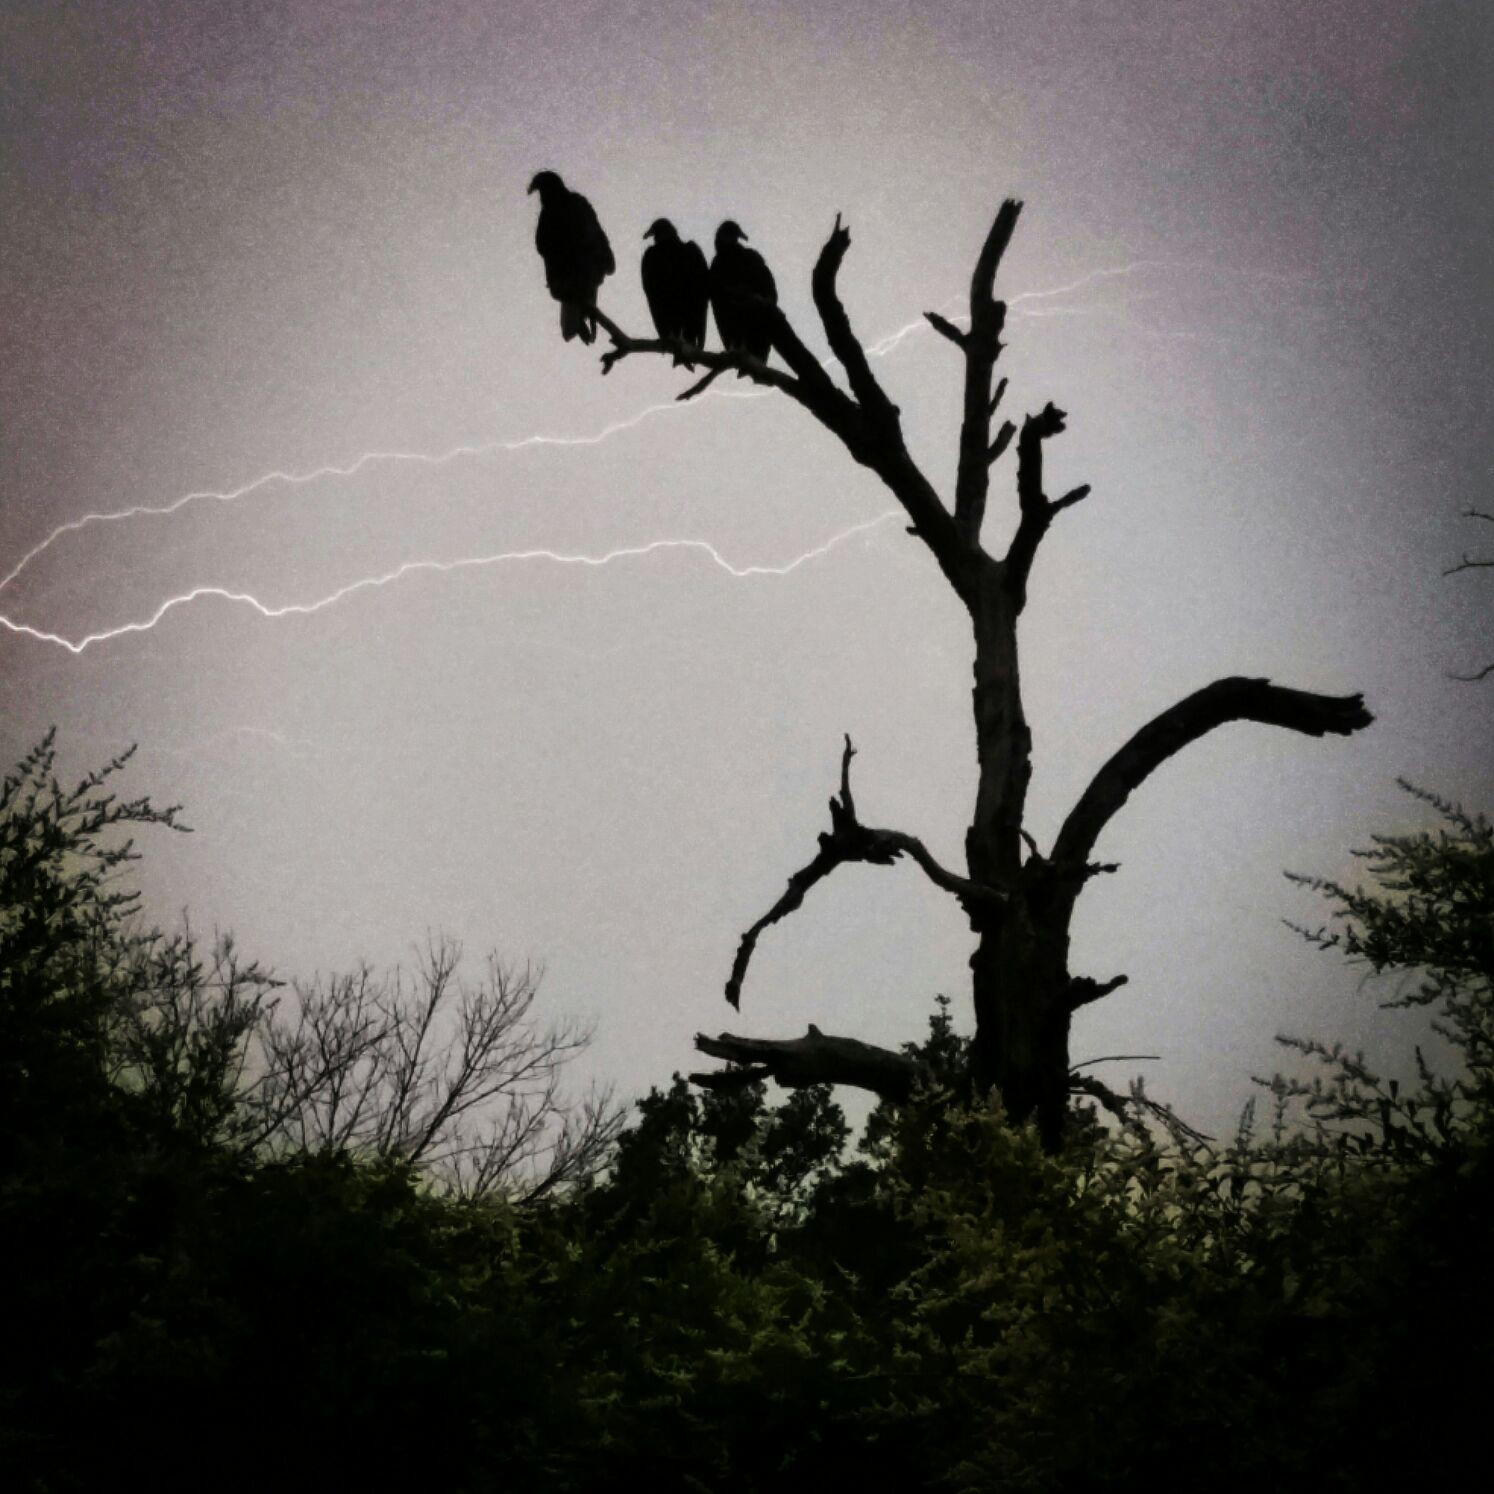 Snapped a rad photo of some ominous turkey vultures in Texas the other week!